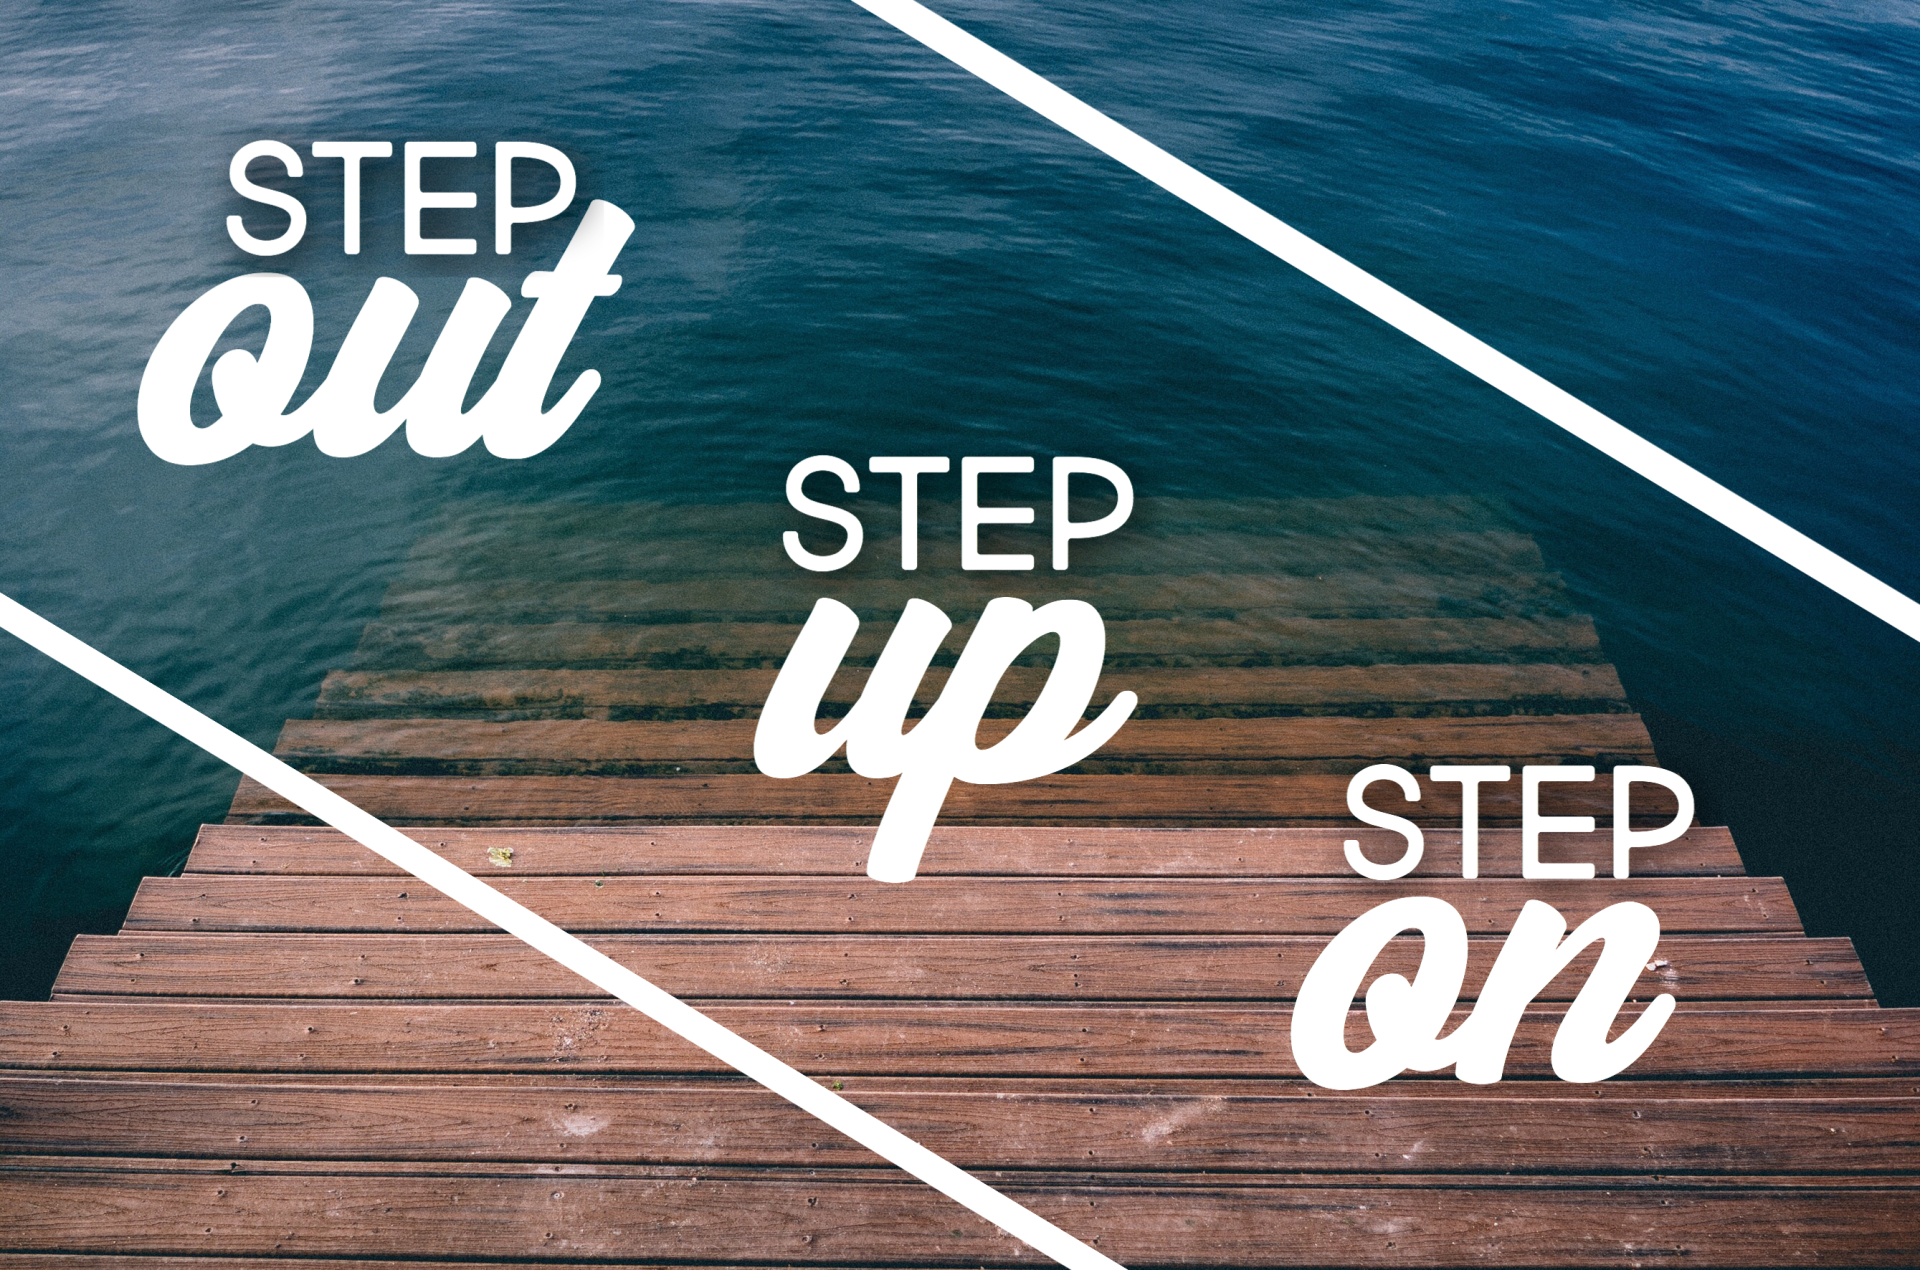 Step Out - Step Up - Step On